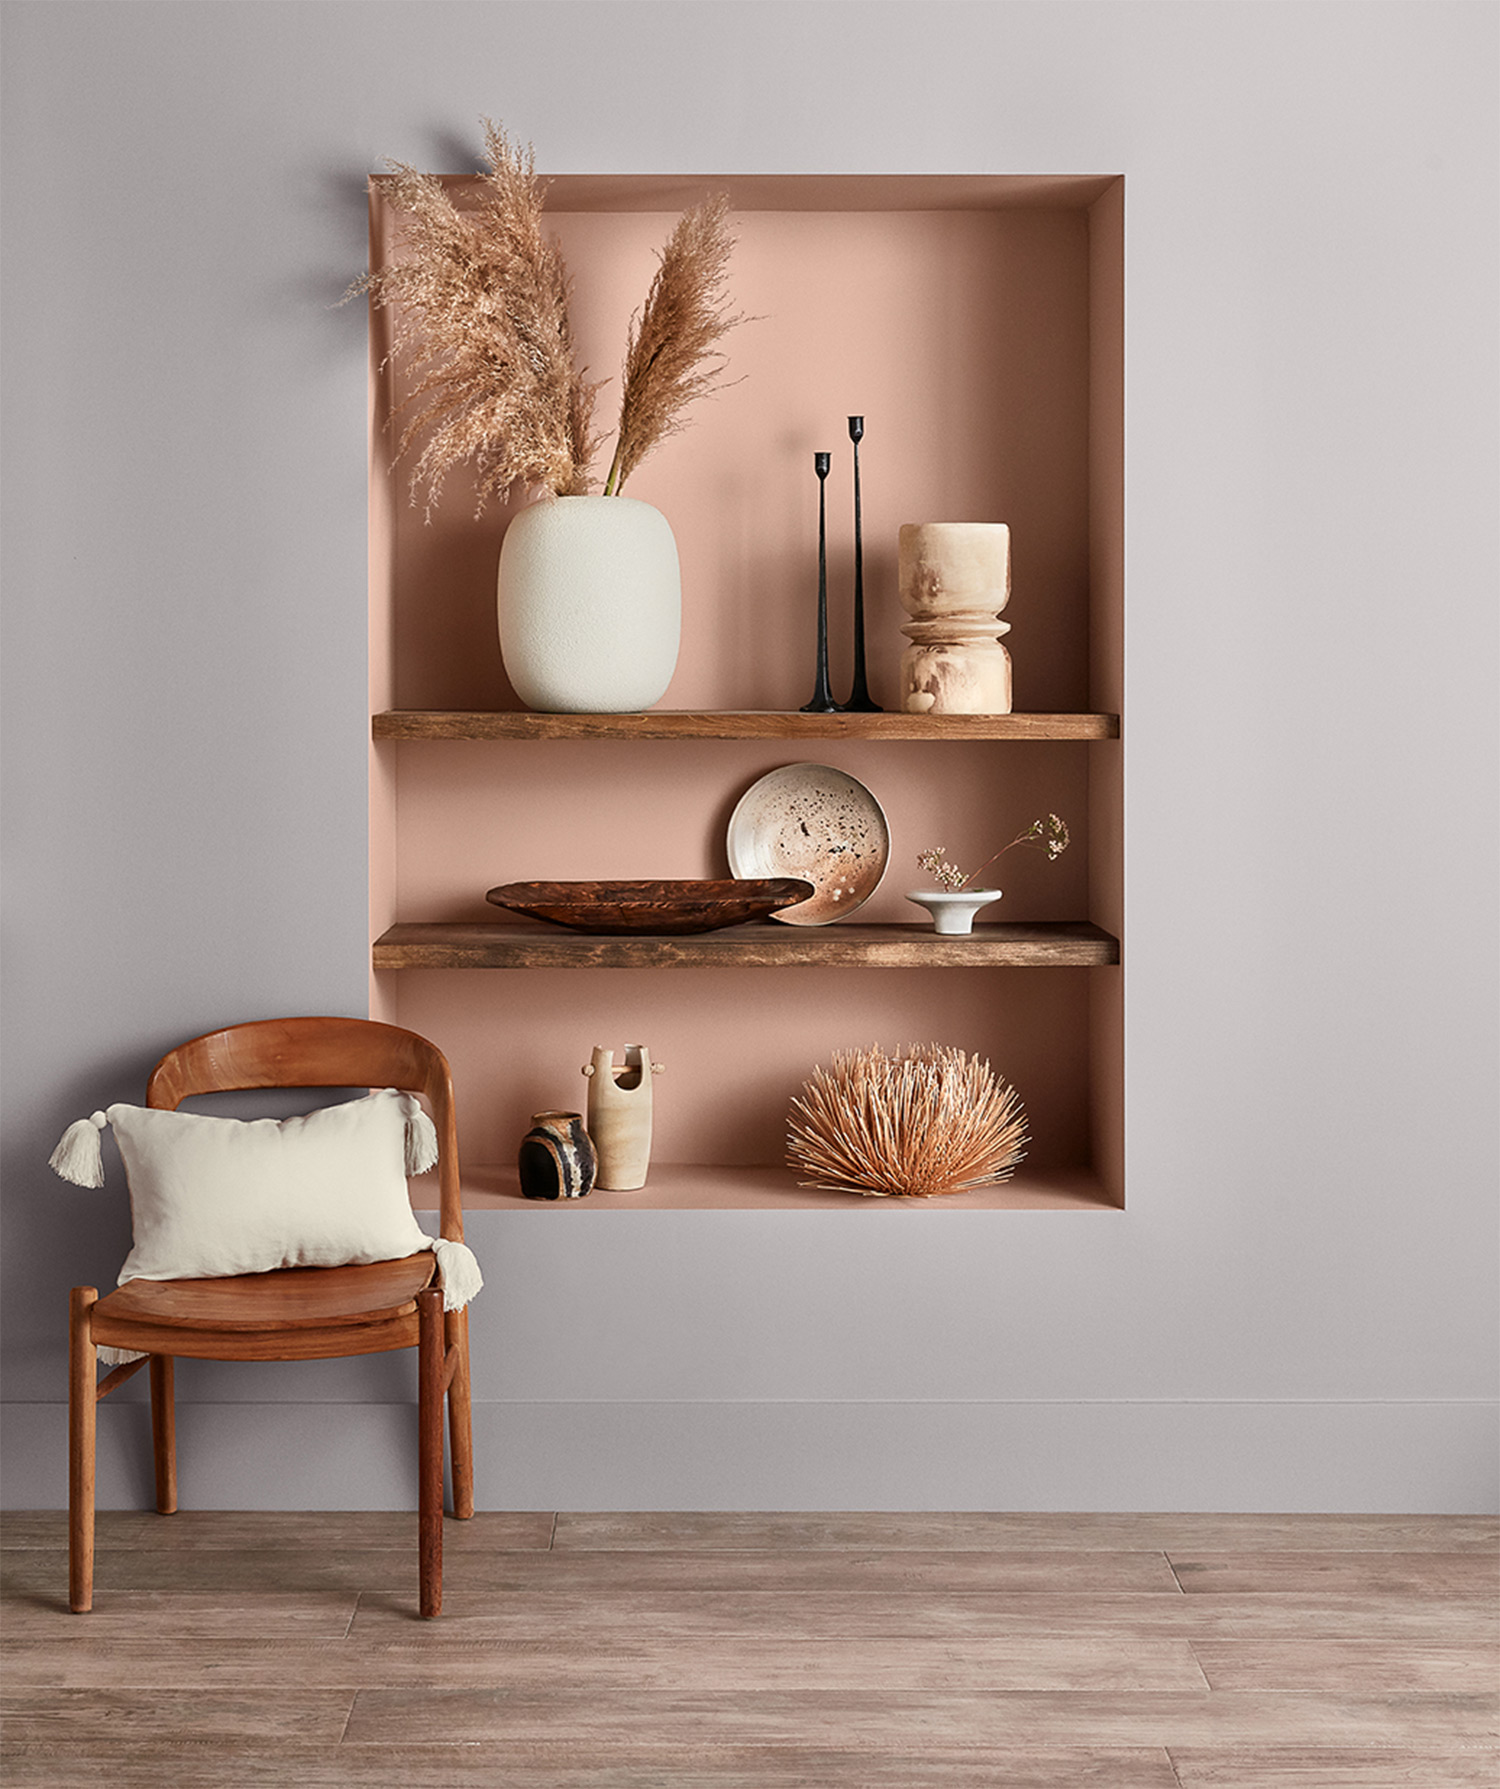 Shelf holding natural, earth-tone objects painted Hushed Auburn SW 9080 set in a wall painted Mystical Shade SW 6276.